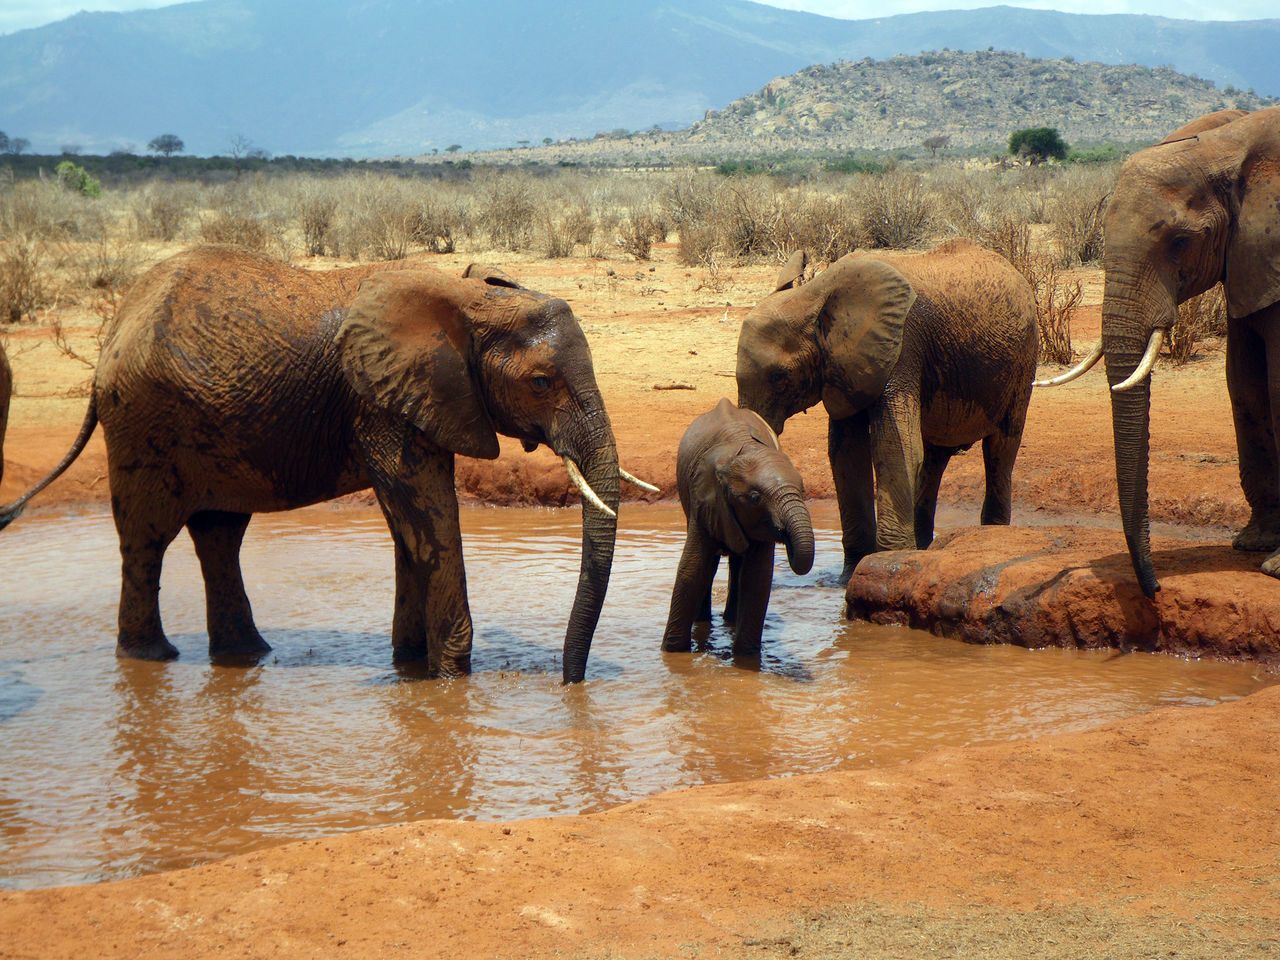 elephant, group of animals, animal themes, animal, animals in the wild, mammal, animal wildlife, water, safari, nature, day, vertebrate, waterfront, no people, lake, landscape, young animal, environment, outdoors, herbivorous, animal family, african elephant, animal trunk, drinking